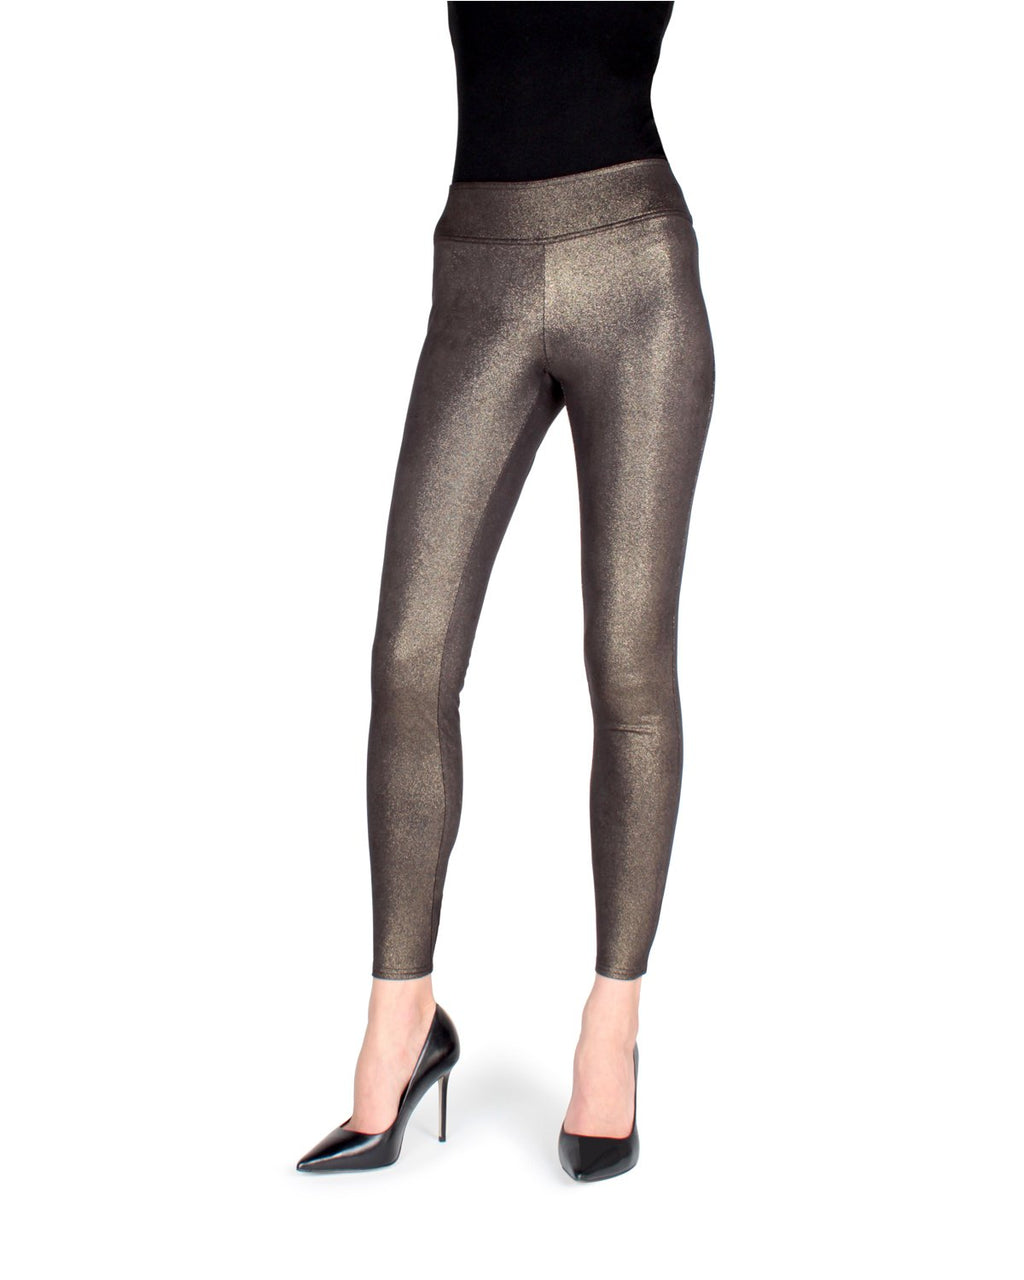 Memoi Black/Gold Metallic Shaping Leggings | Women's Premium Fashion Leggings Pants